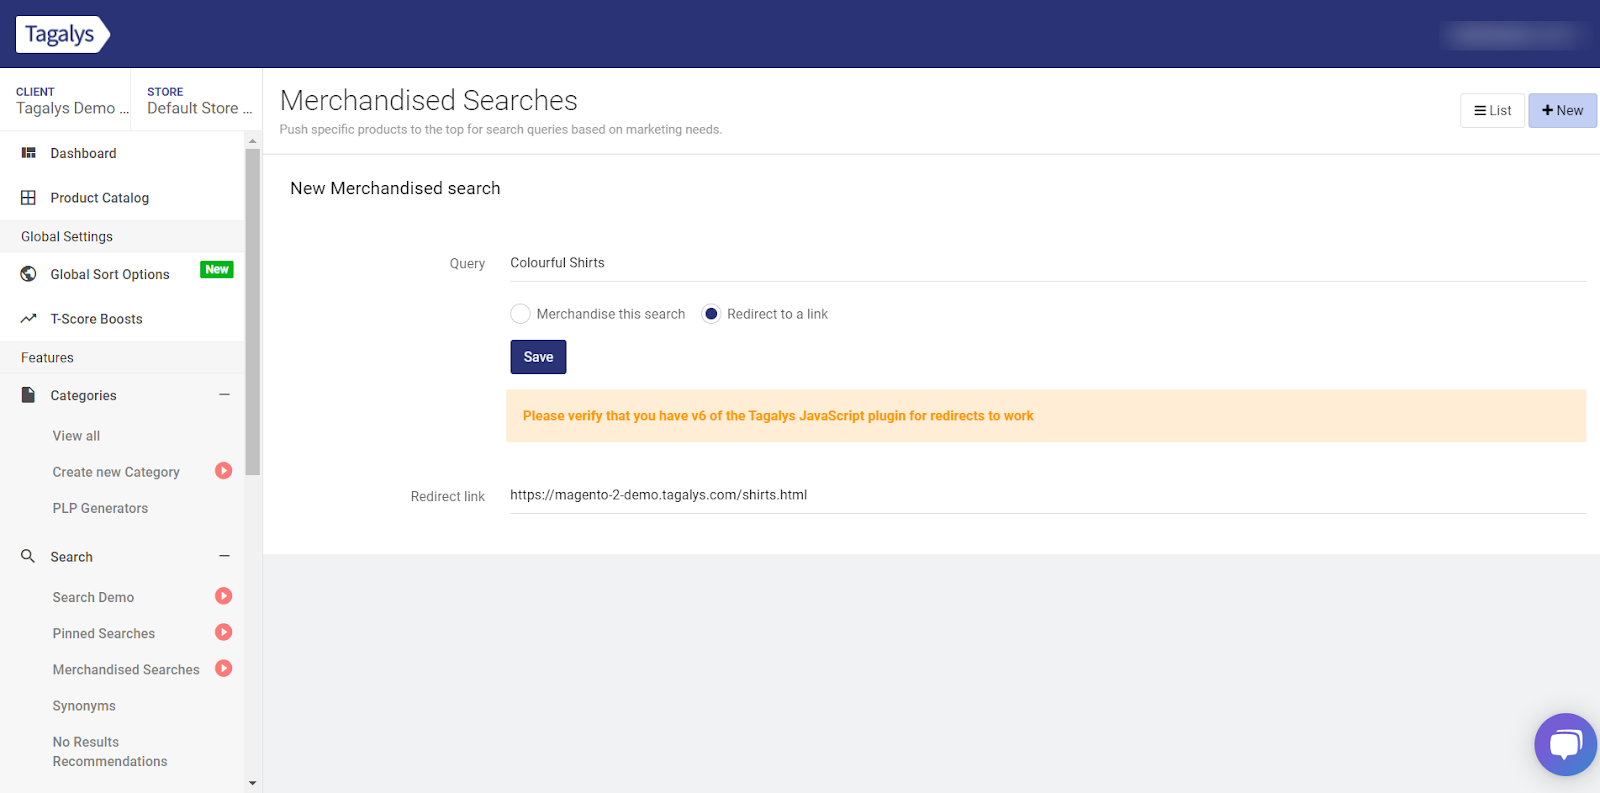 Redirecting a Search query to a link in Tagalys Search